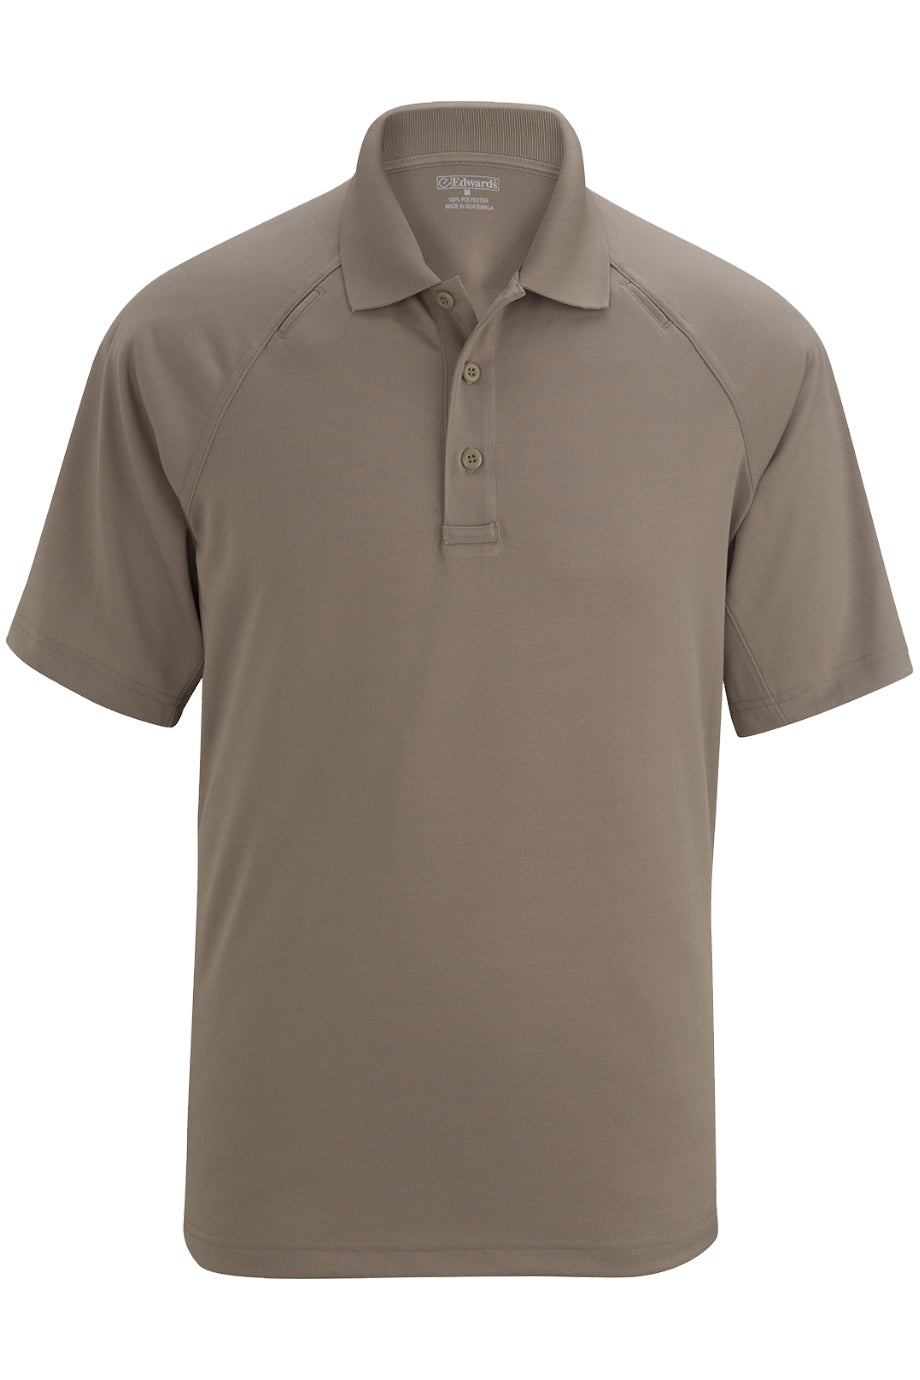 Silver Tan Edwards Mens Tactical Snag-Proof Short Sleeve Polo